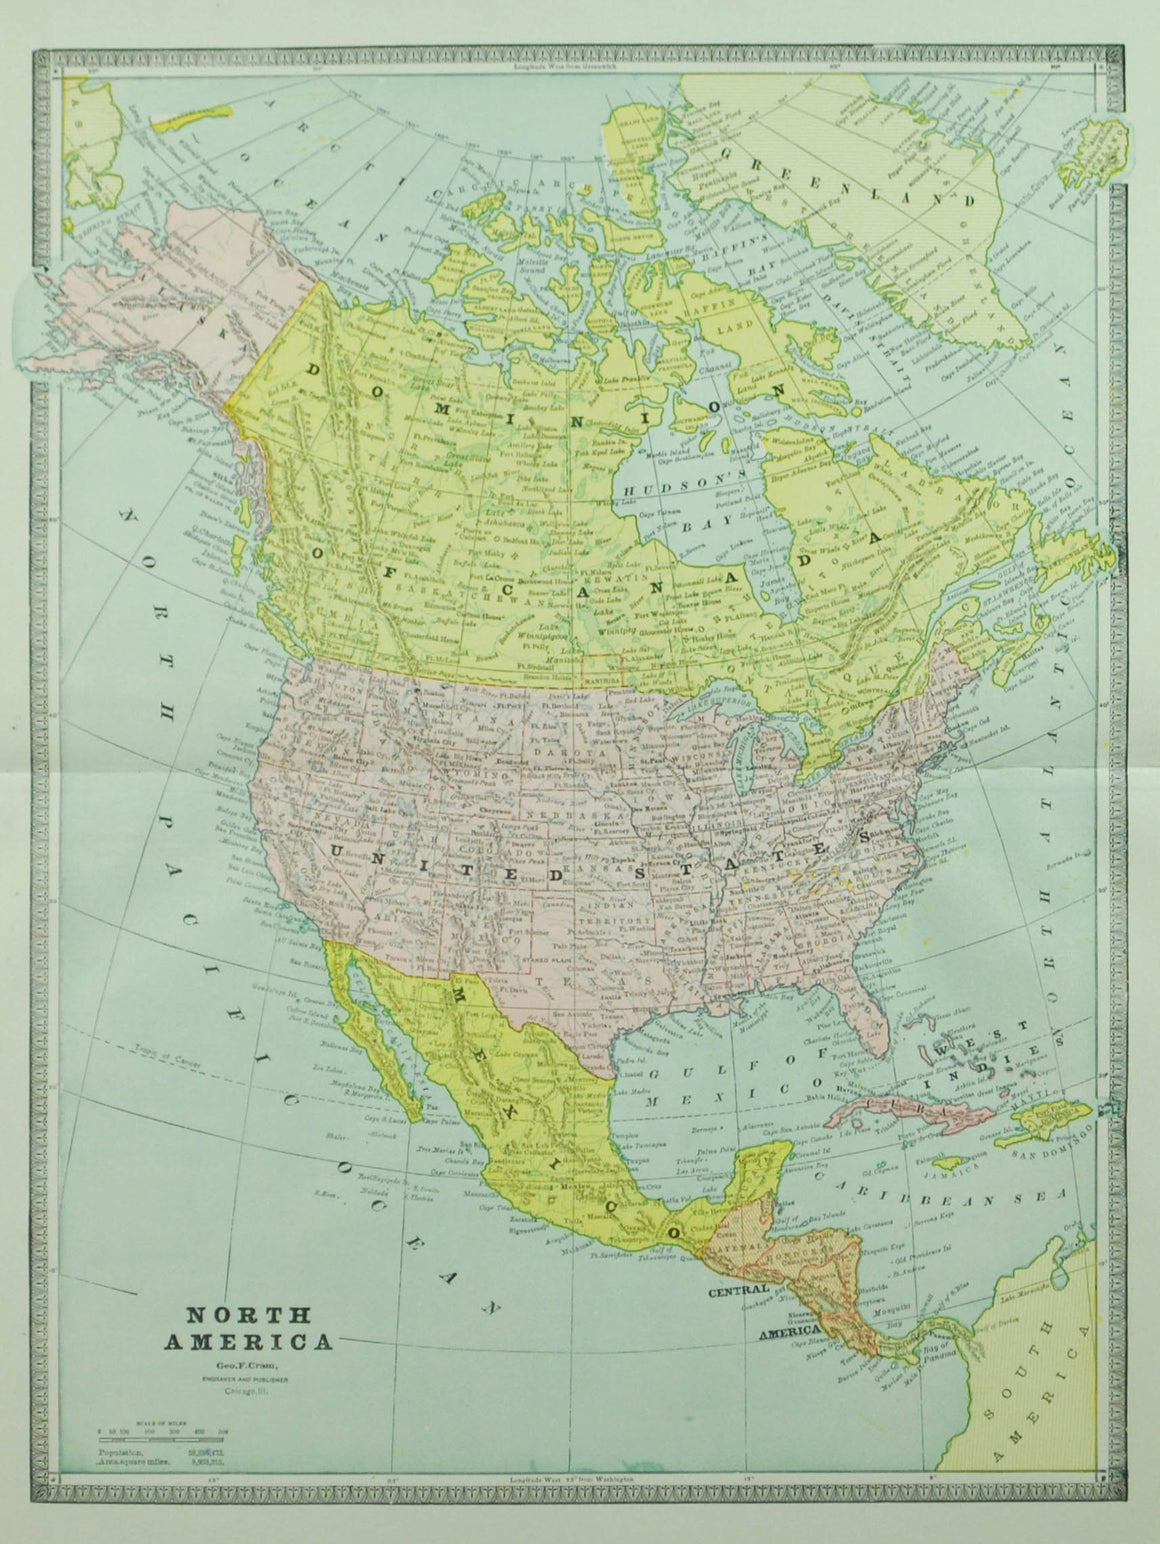 1884 North America - Cram